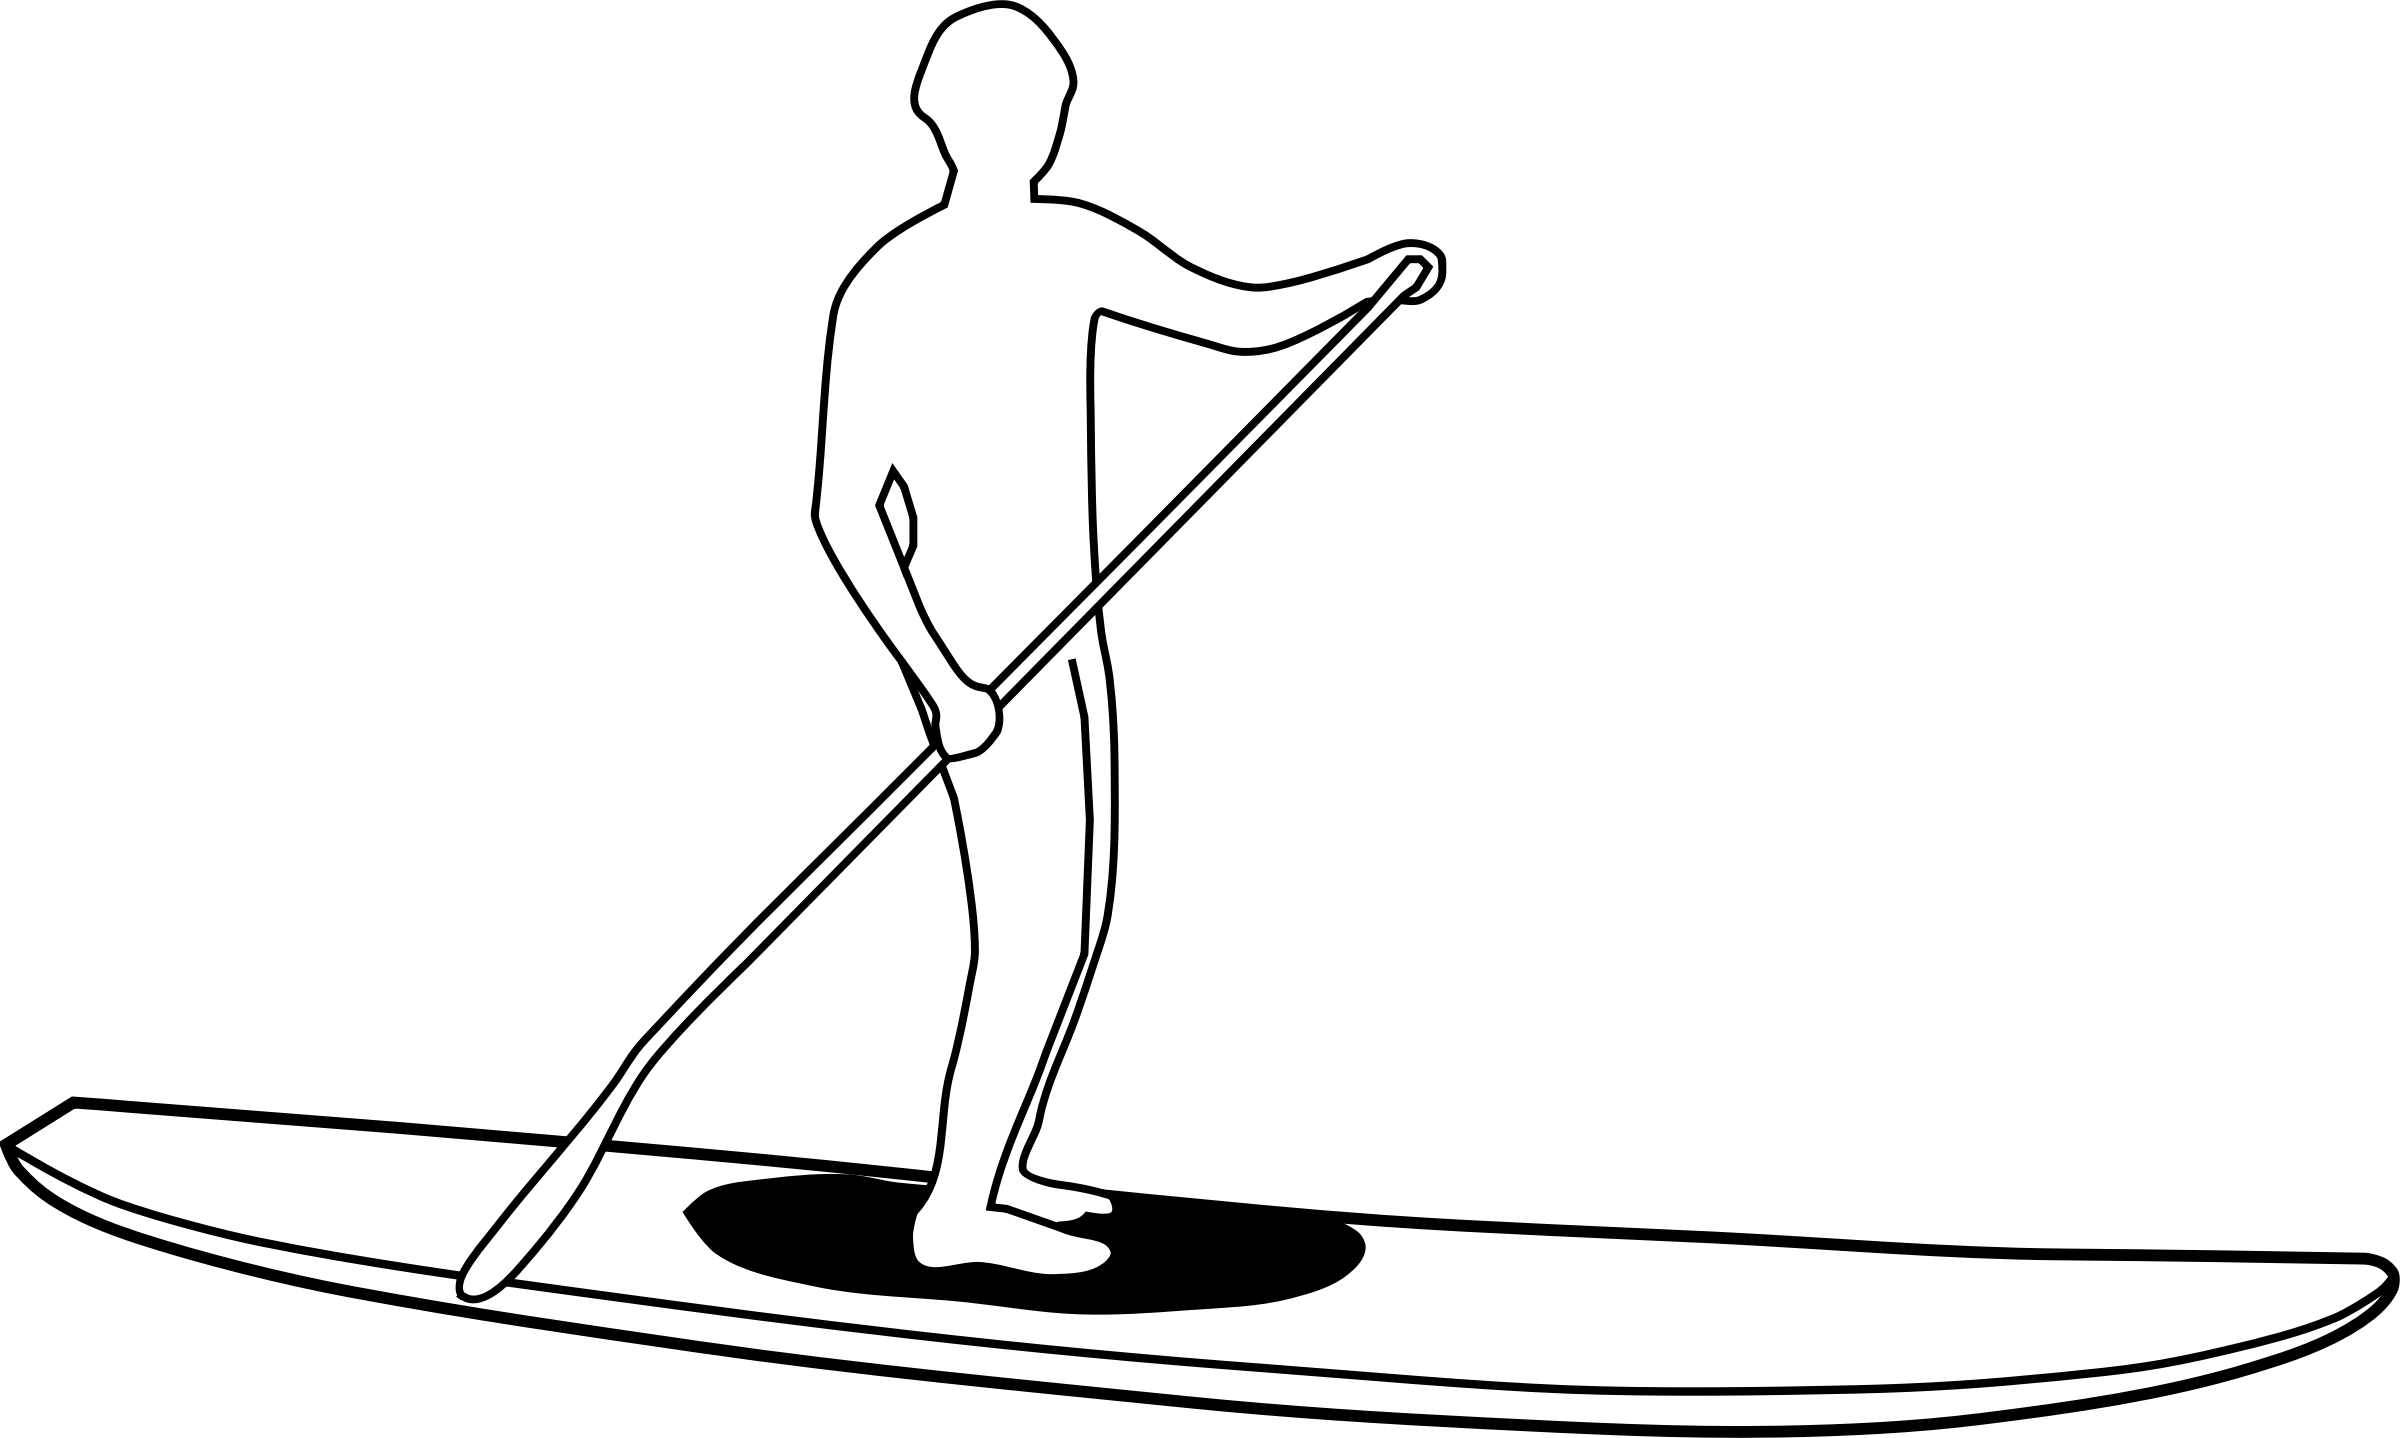 Free Paddle Cliparts Download Free Clip Art Free Clip